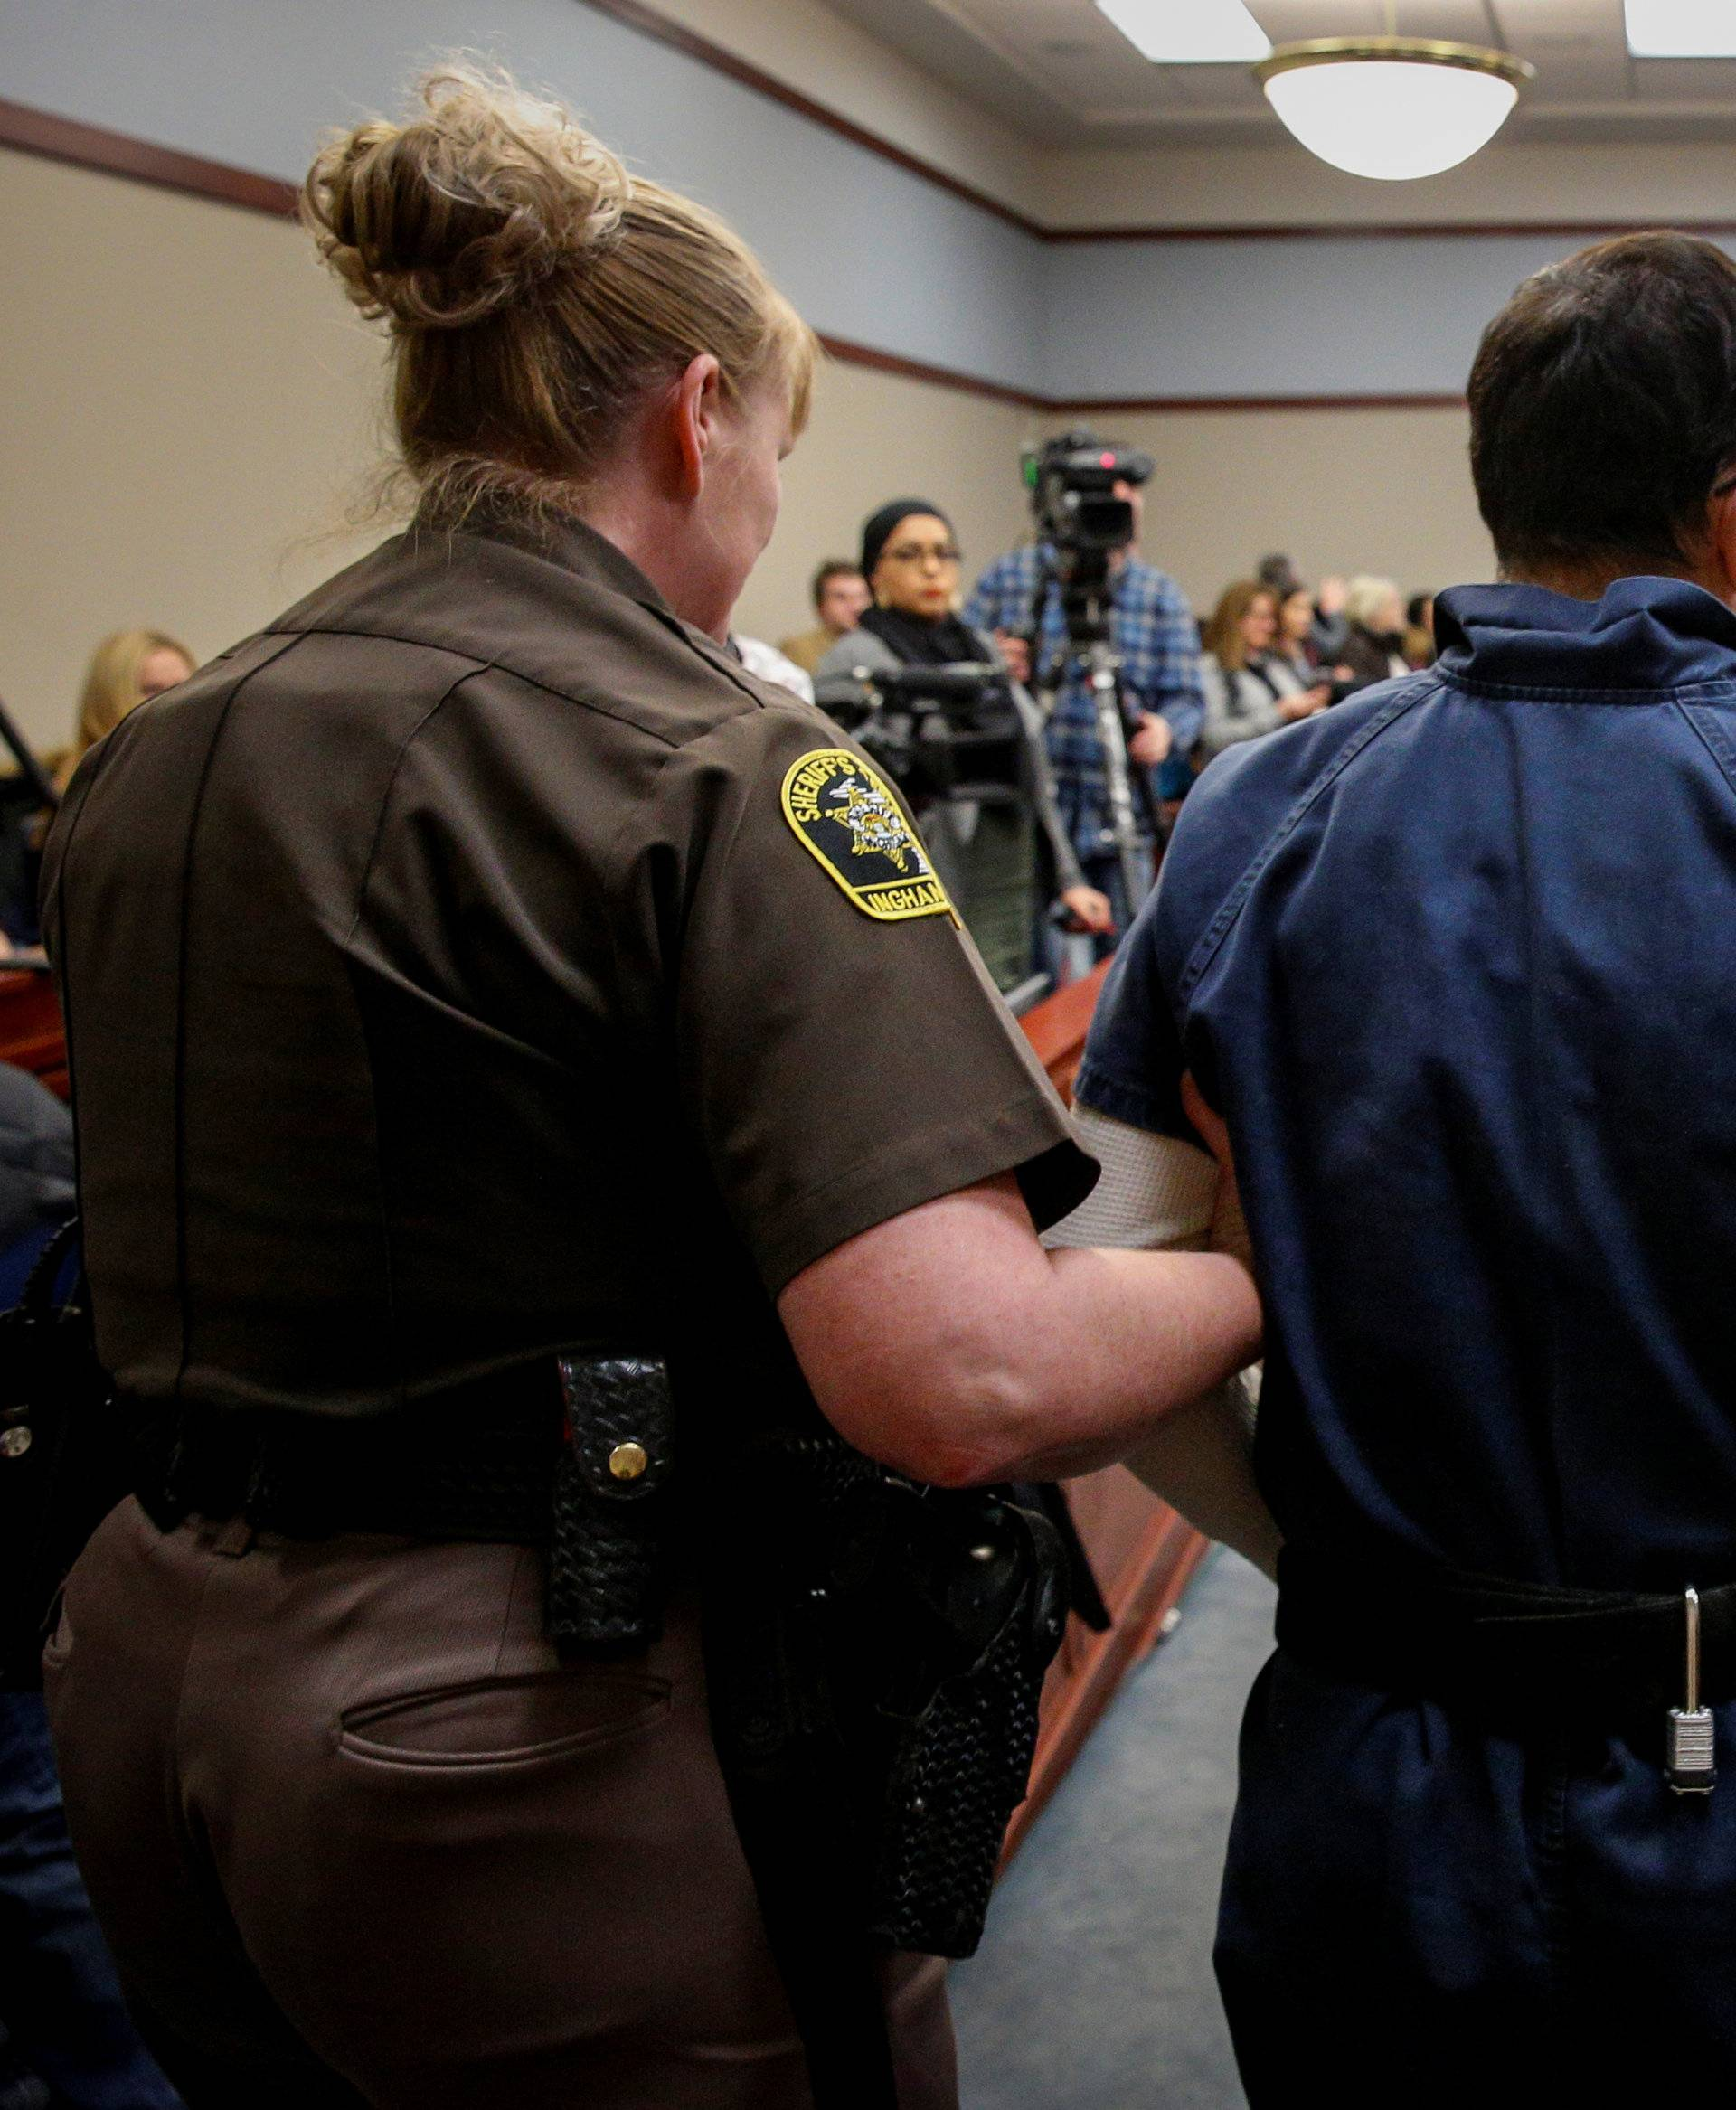 Larry Nassar, a former team USA Gymnastics doctor who pleaded guilty in November 2017 to sexual assault charges, is escorted by a court officer during his sentencing hearing in Lansing, Michigan